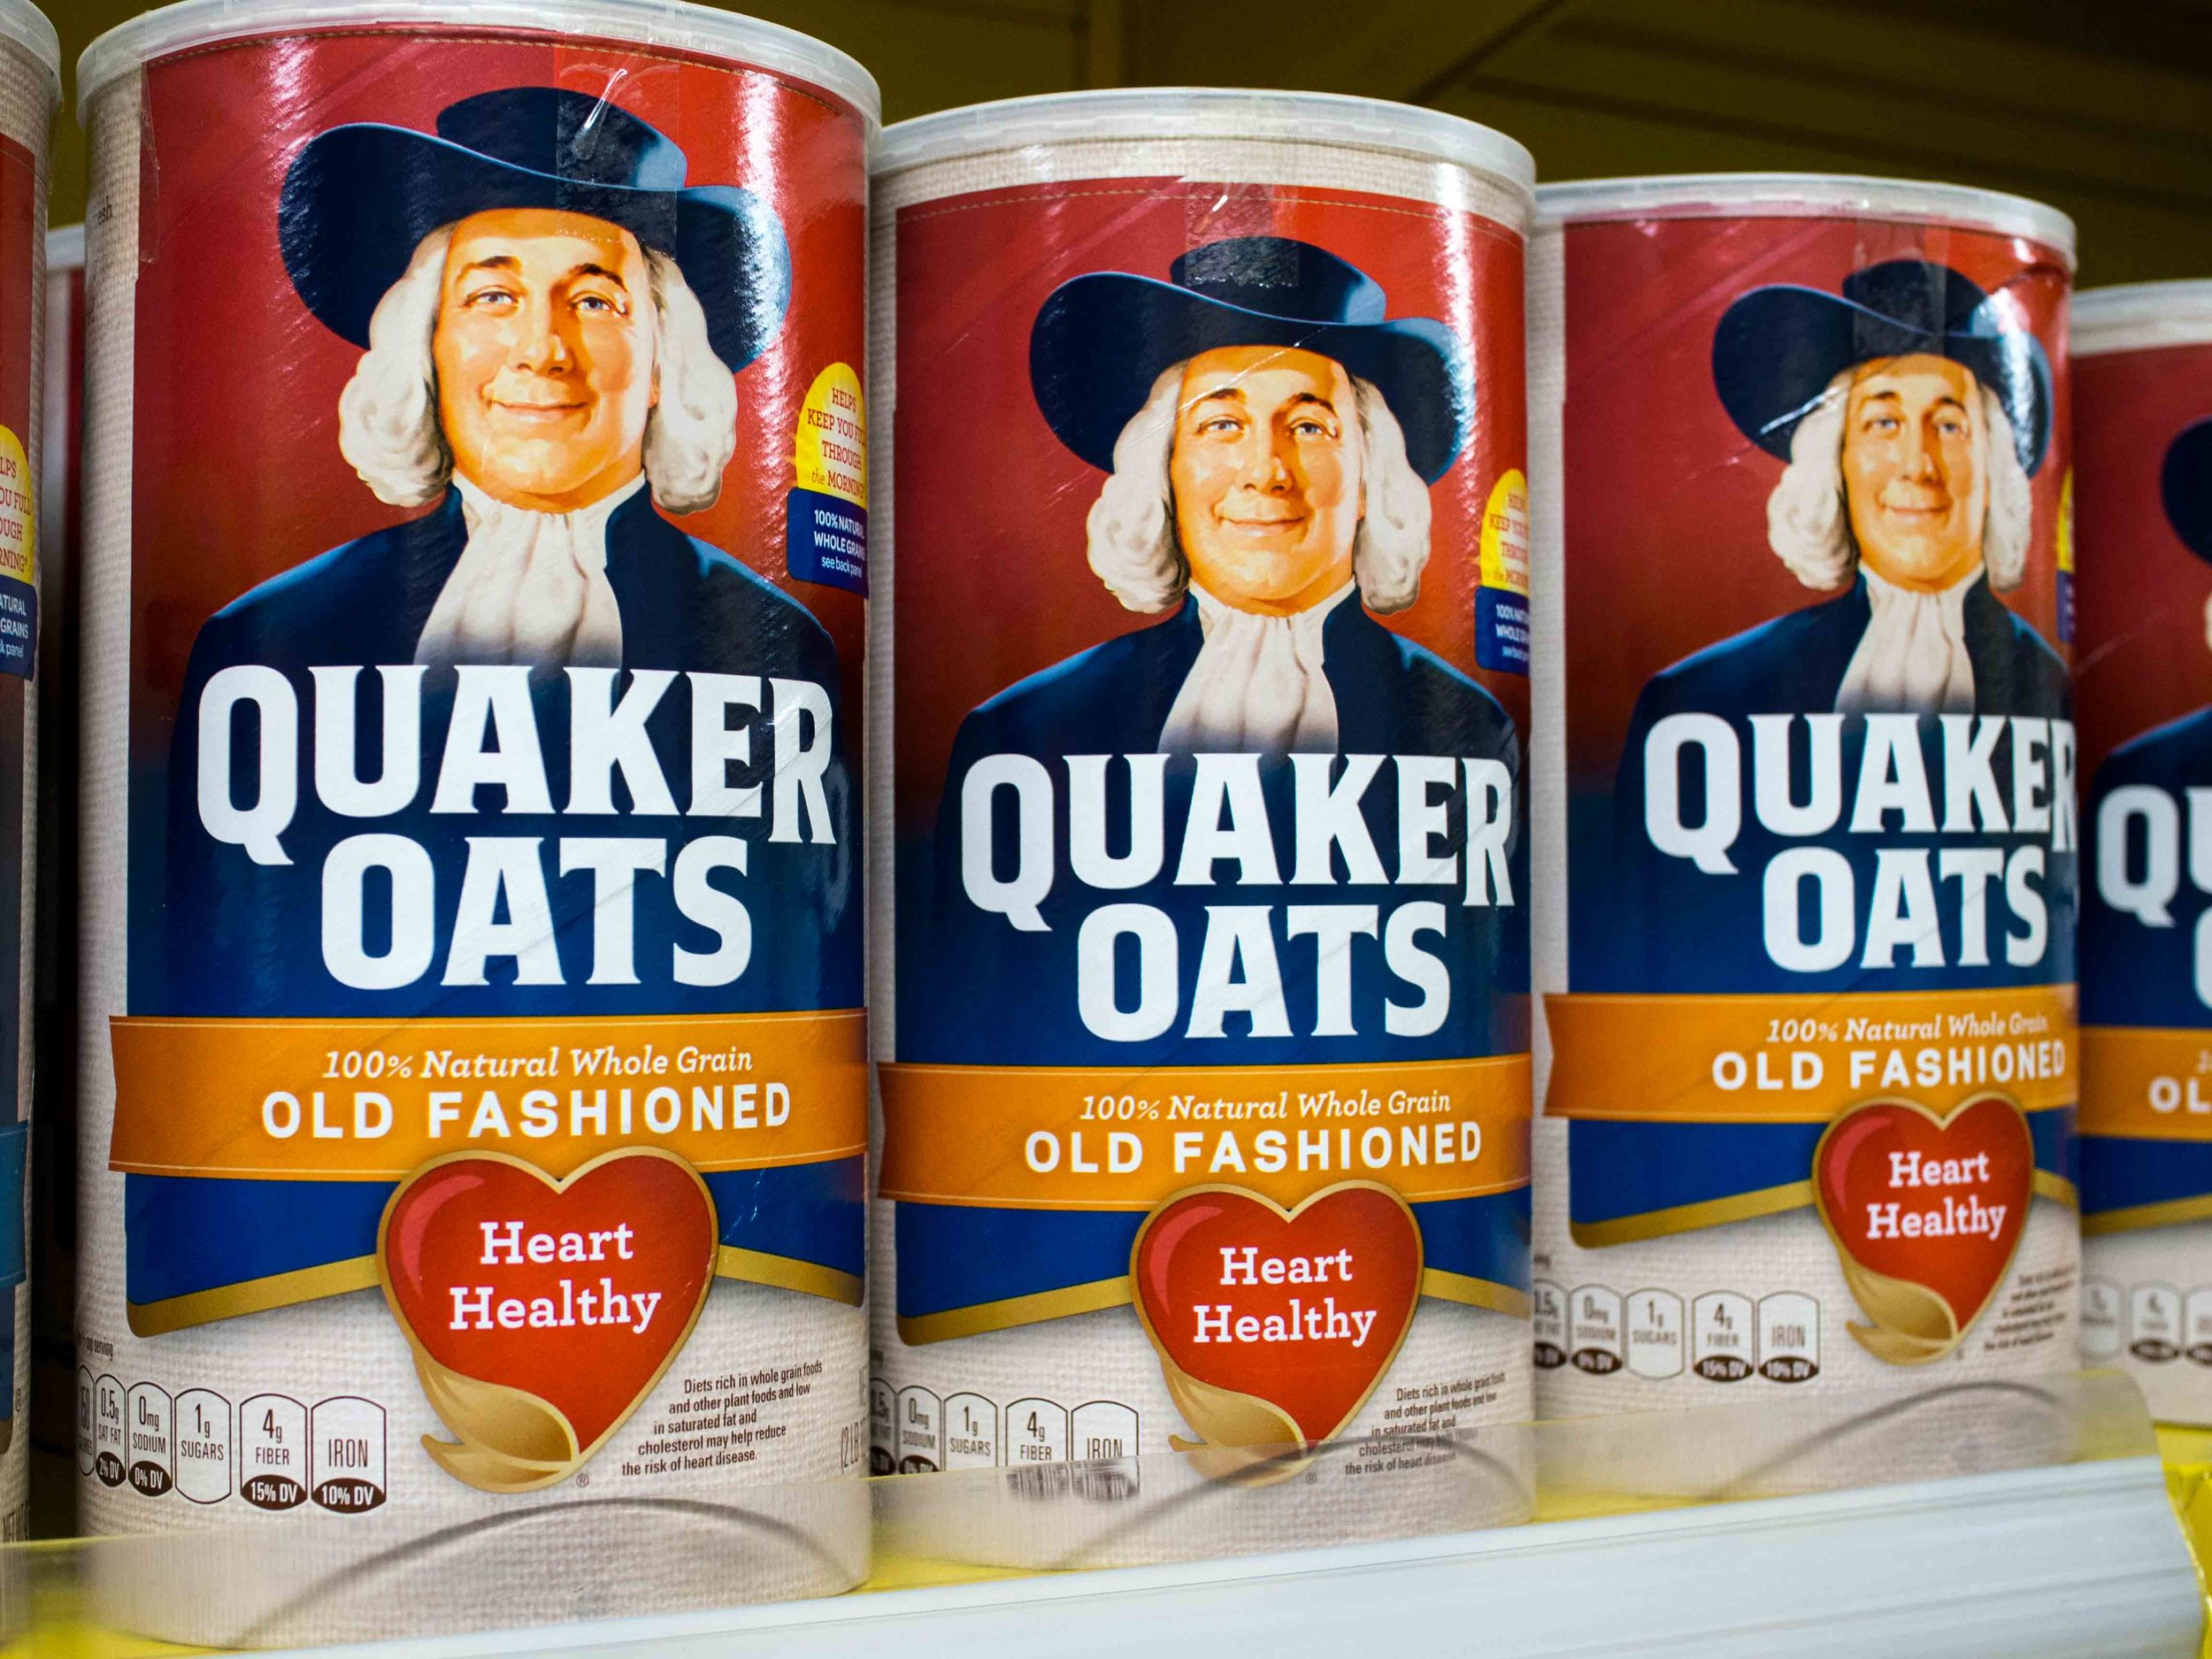 Quaker Oats Old Fashion Oat Meal